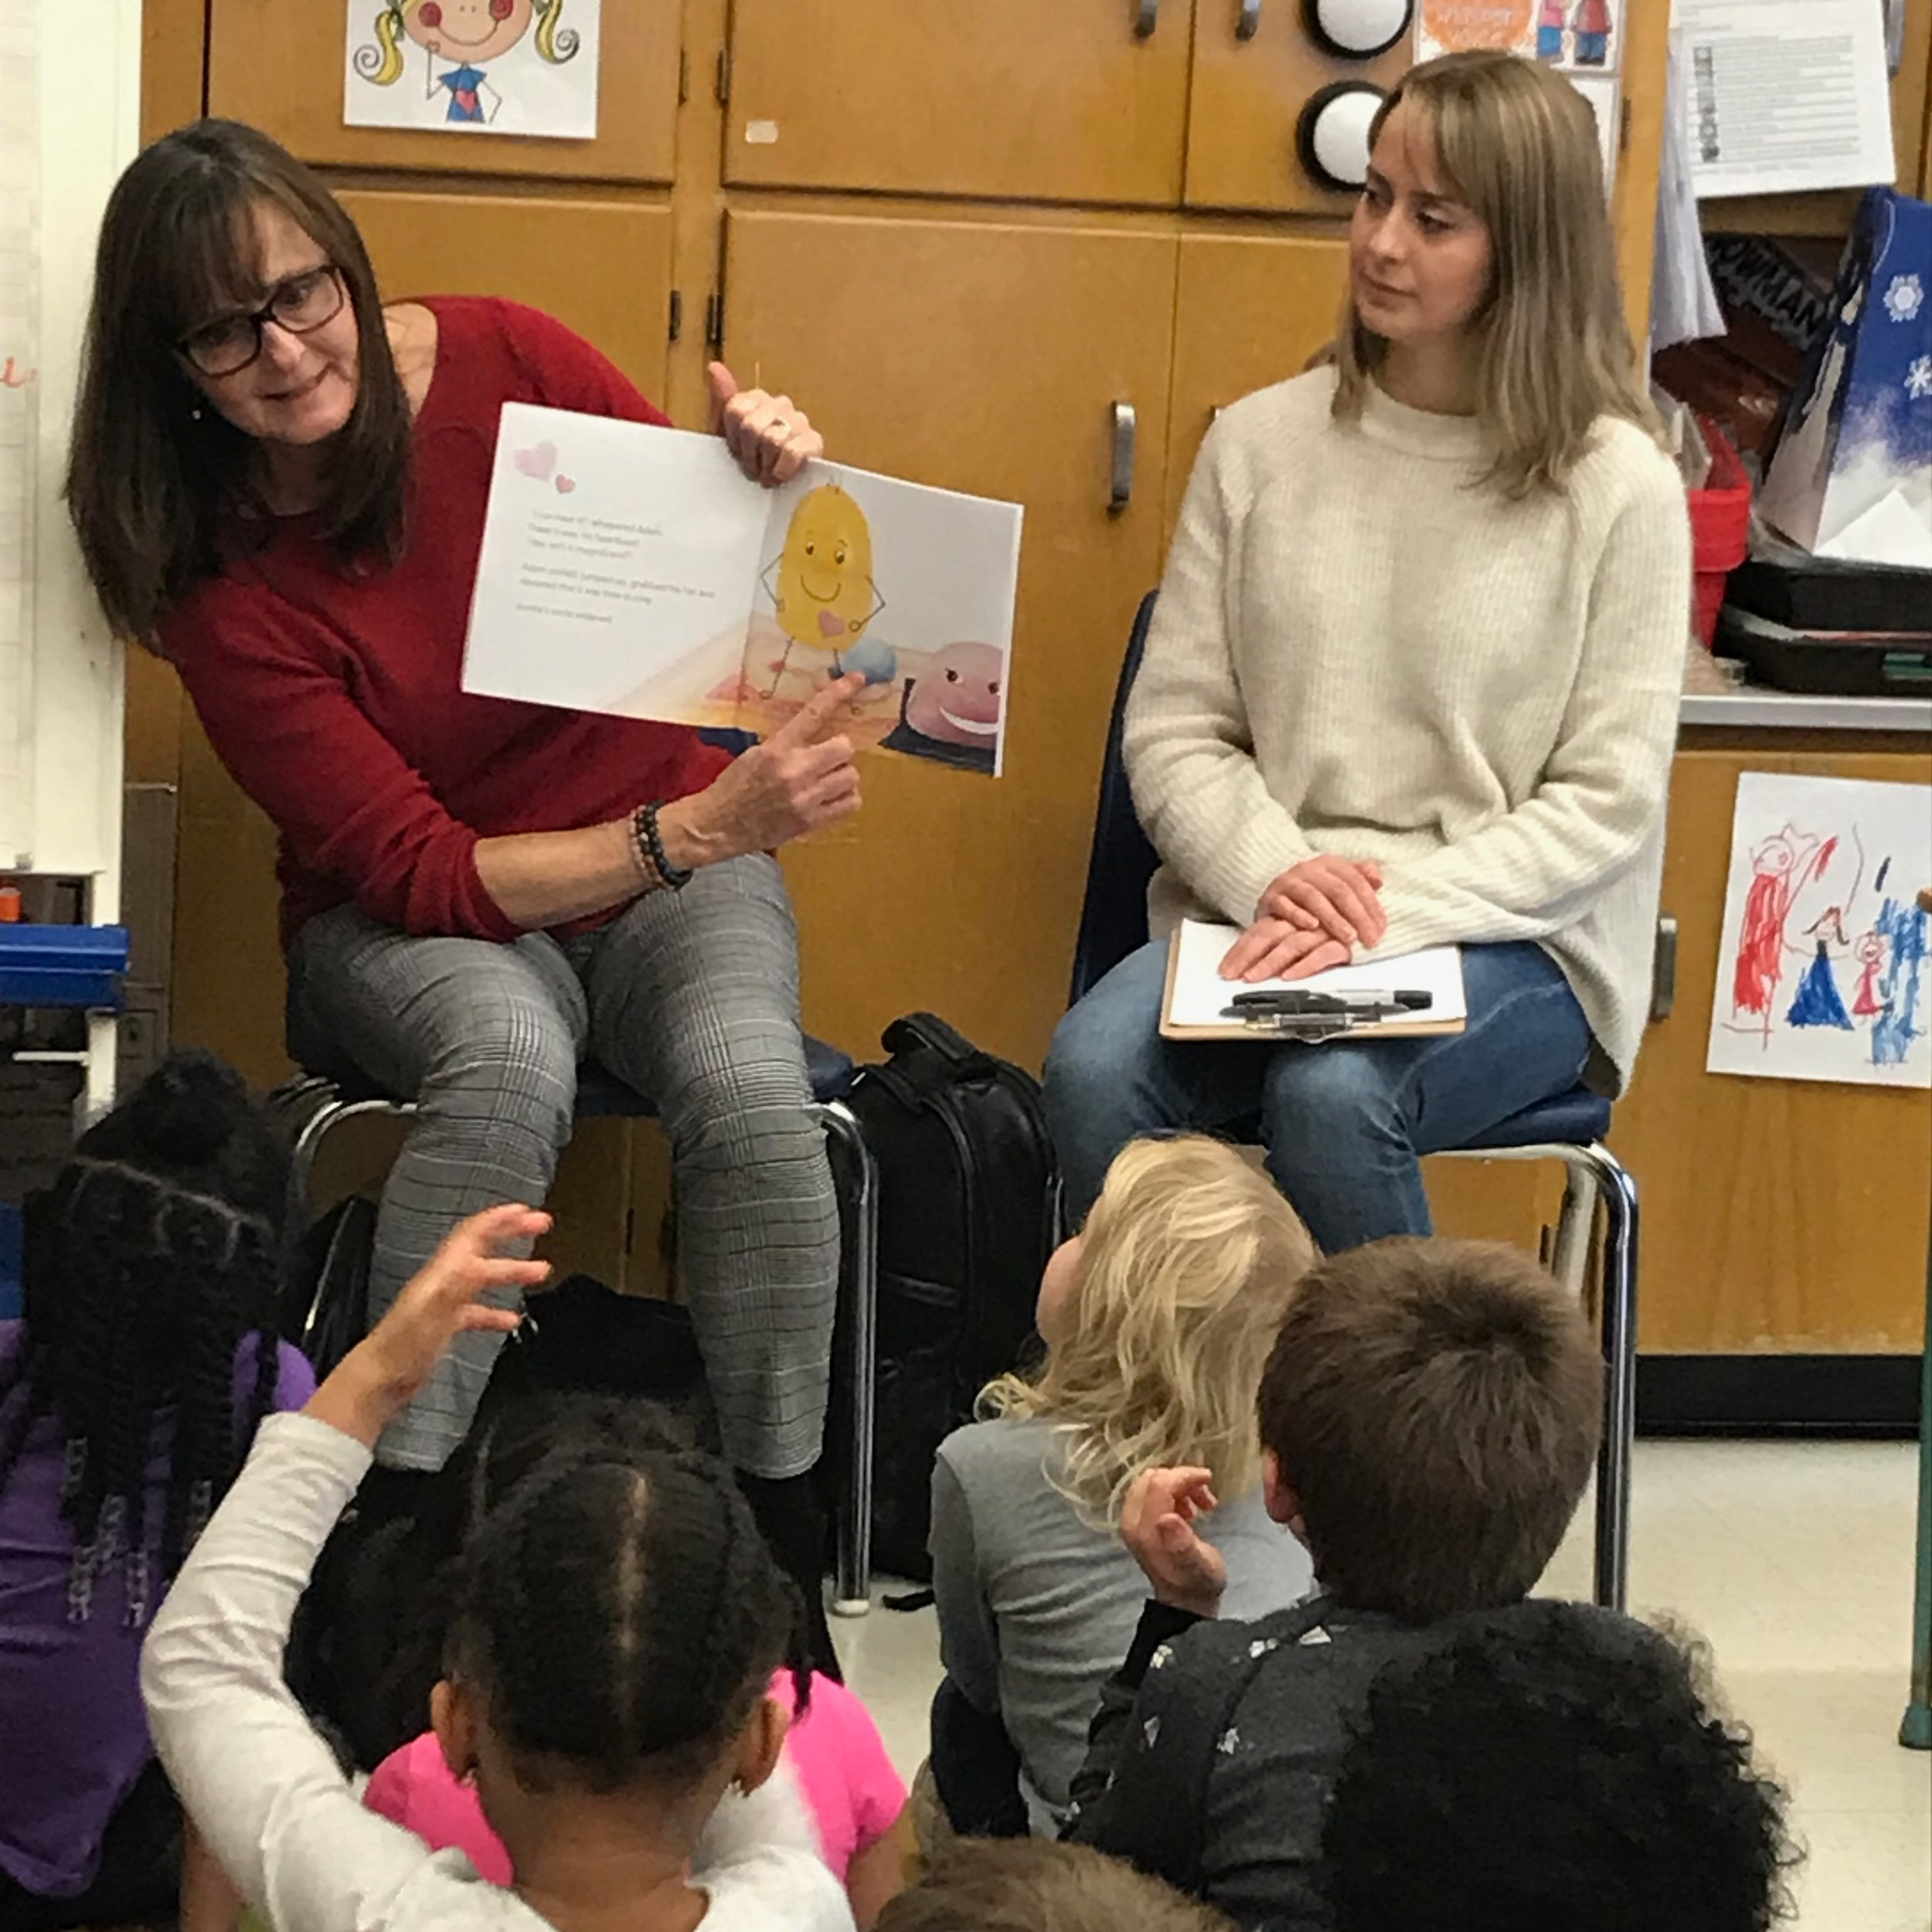 Kindergarten class visit. Author Michele Welch (left) and Illustrator Jazmin Welch (right)